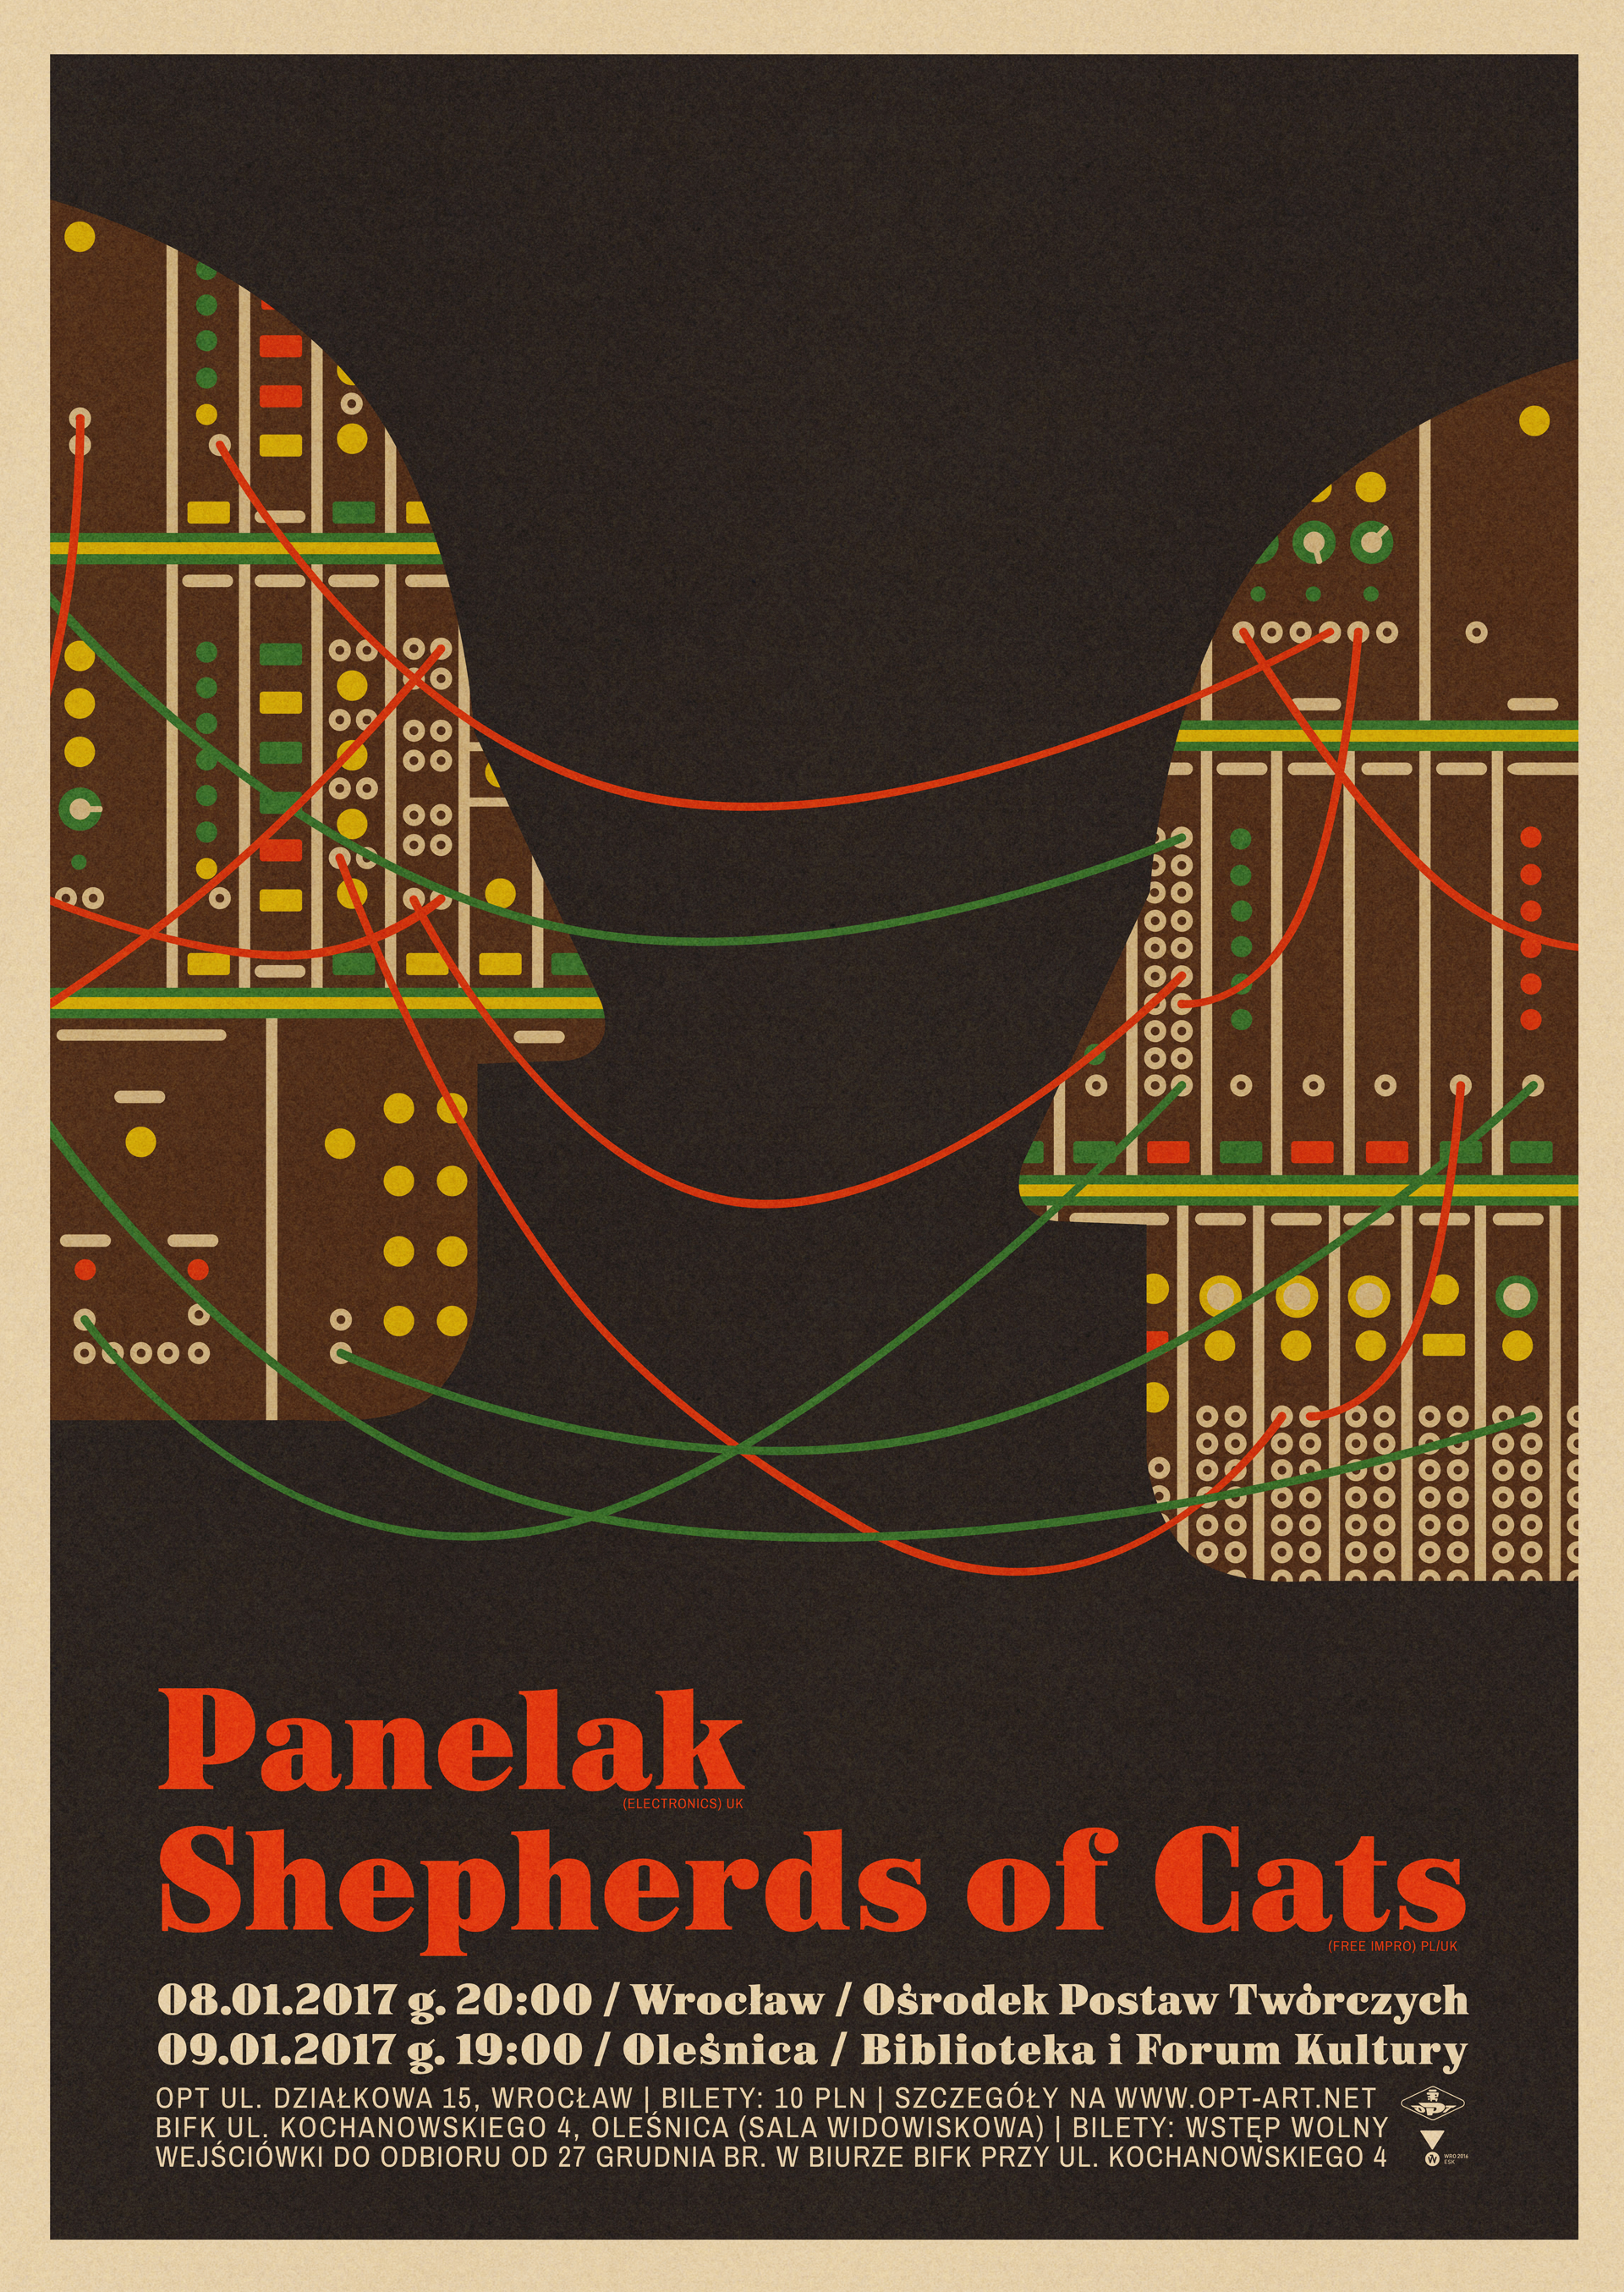 Panelak & Shepherds of Cats